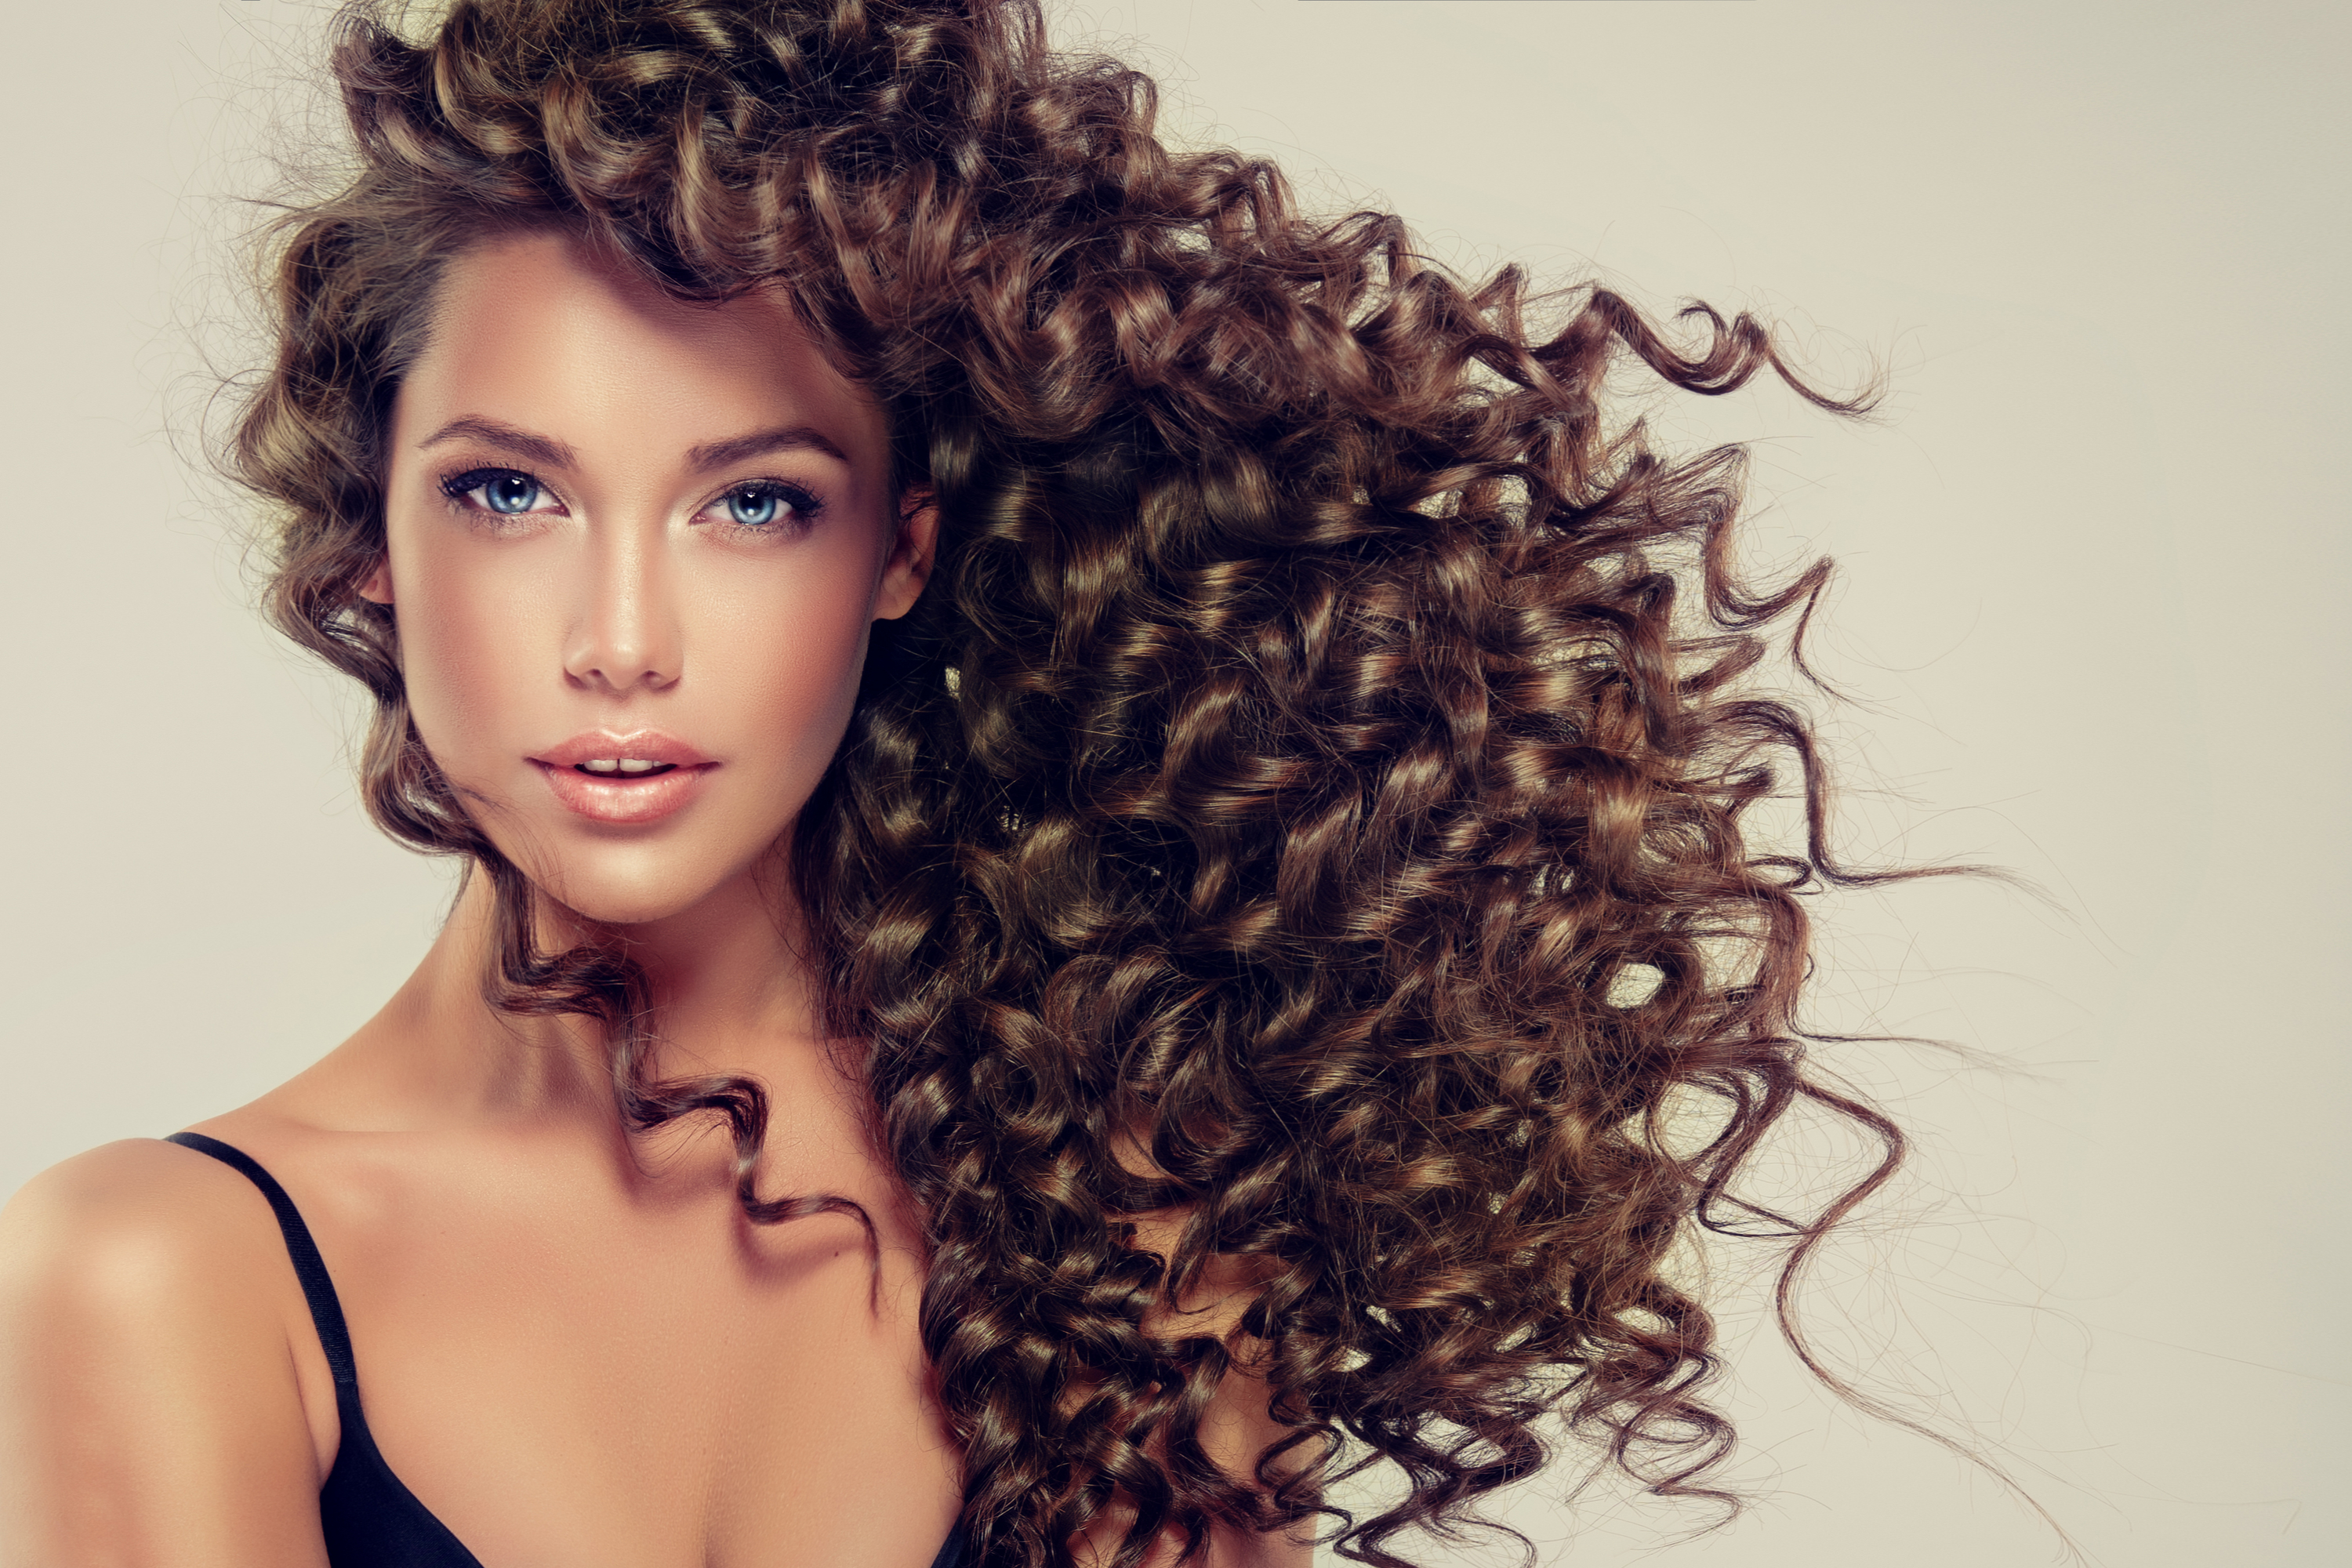 There is nothing worse than dealing with your hair while you're traveling. These travel hairstyles will help keep your hair under control. If you have naturally curly hair, try doing messy buns.